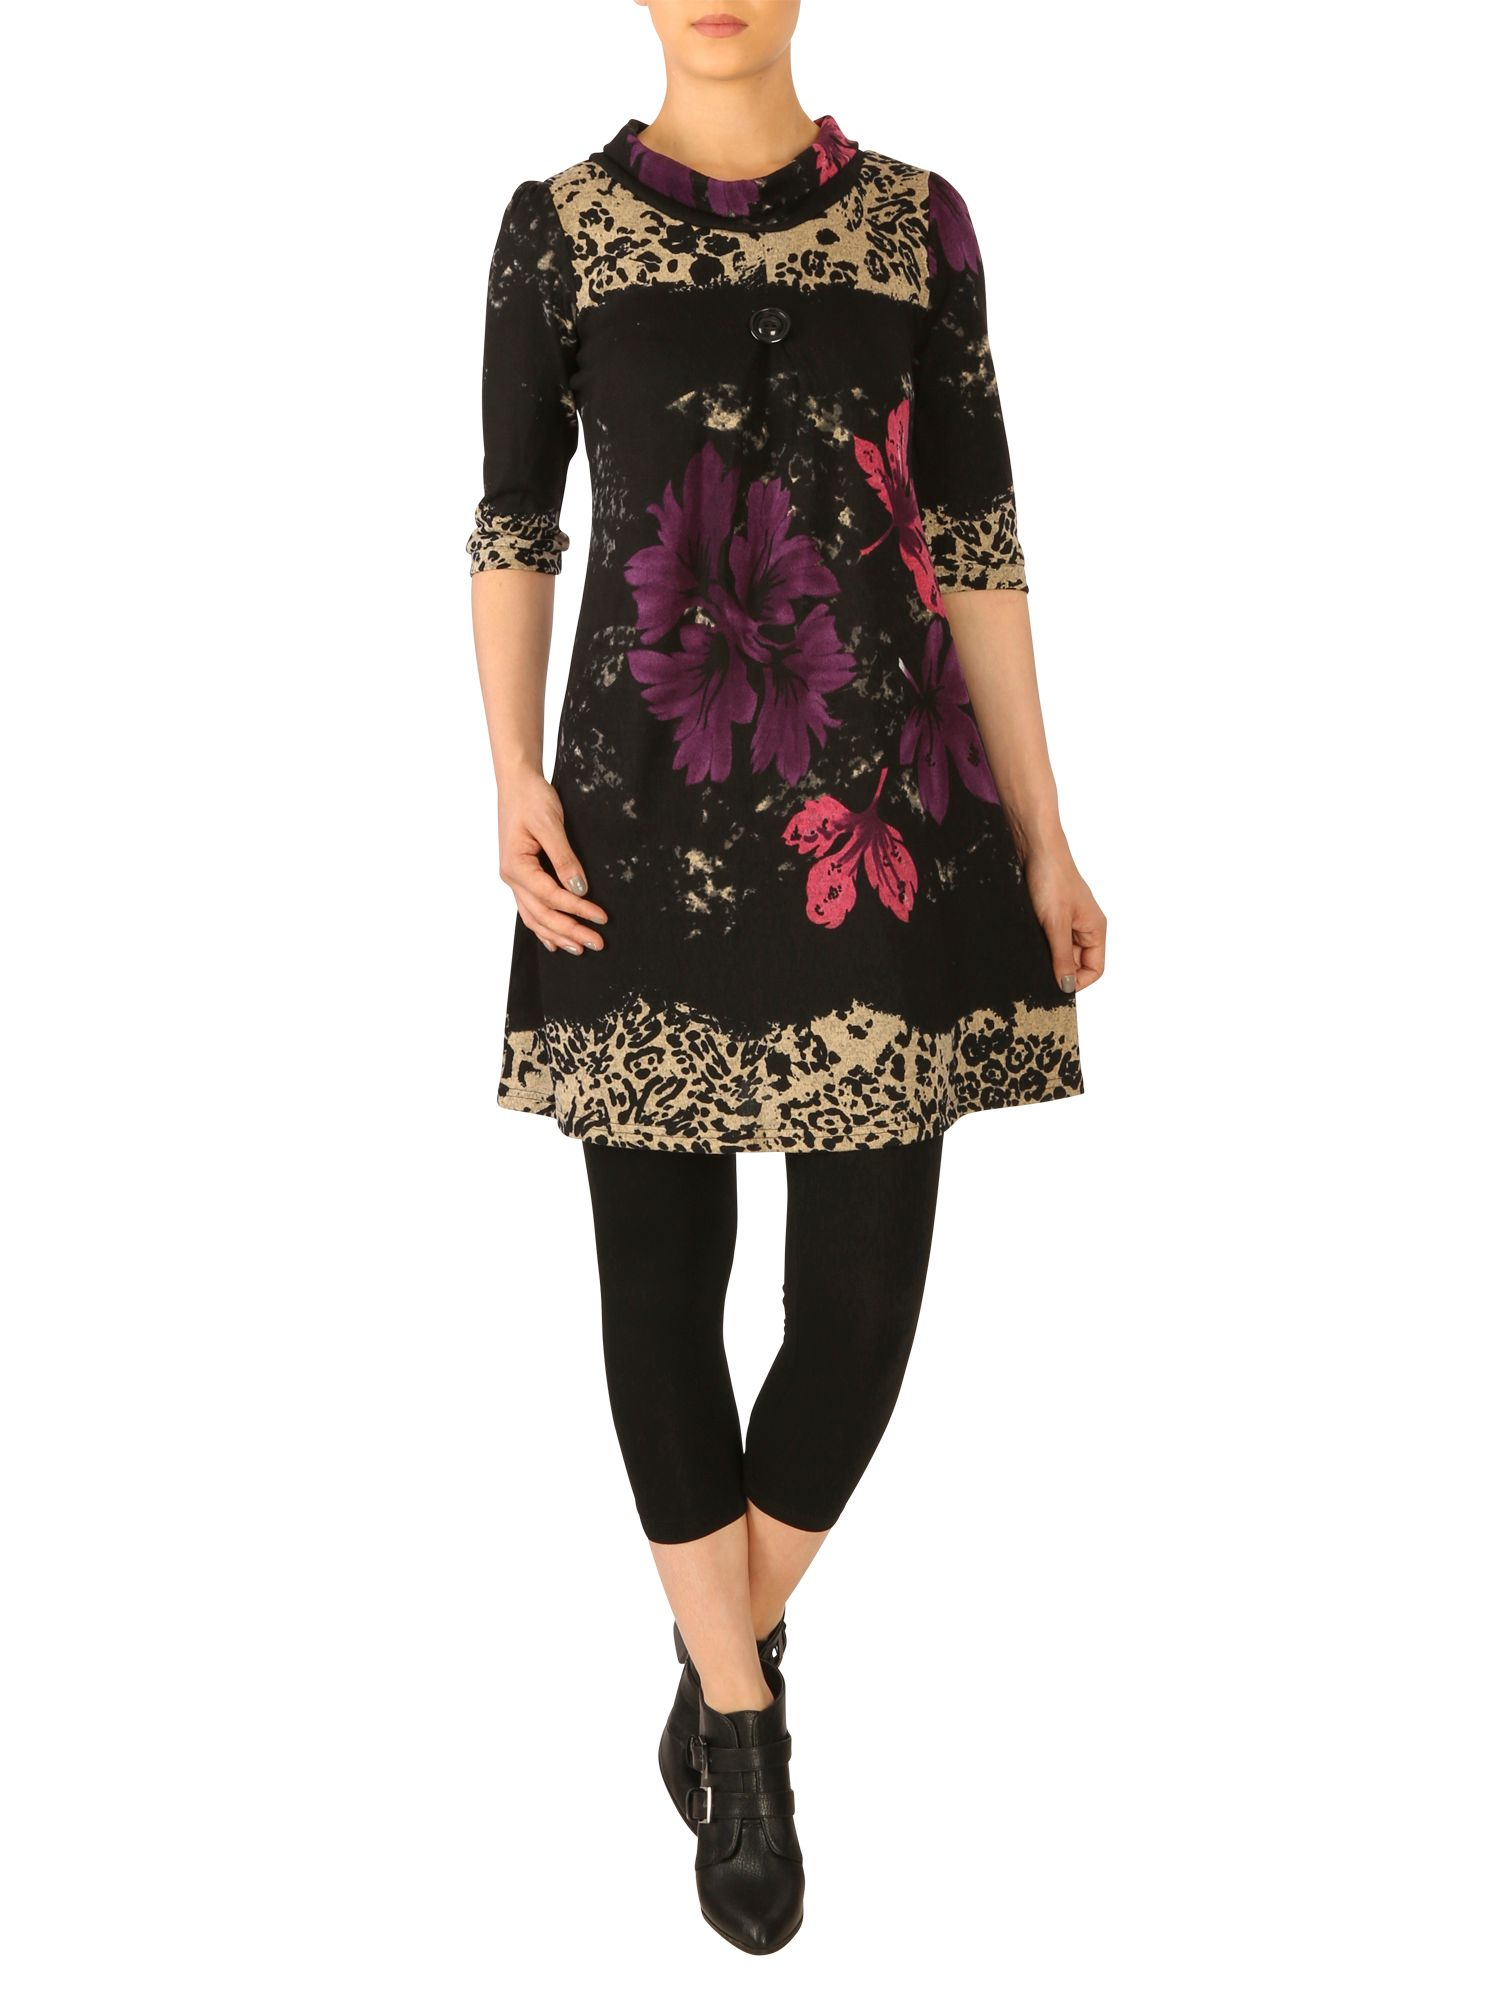 Cowl neck floral tunic dress